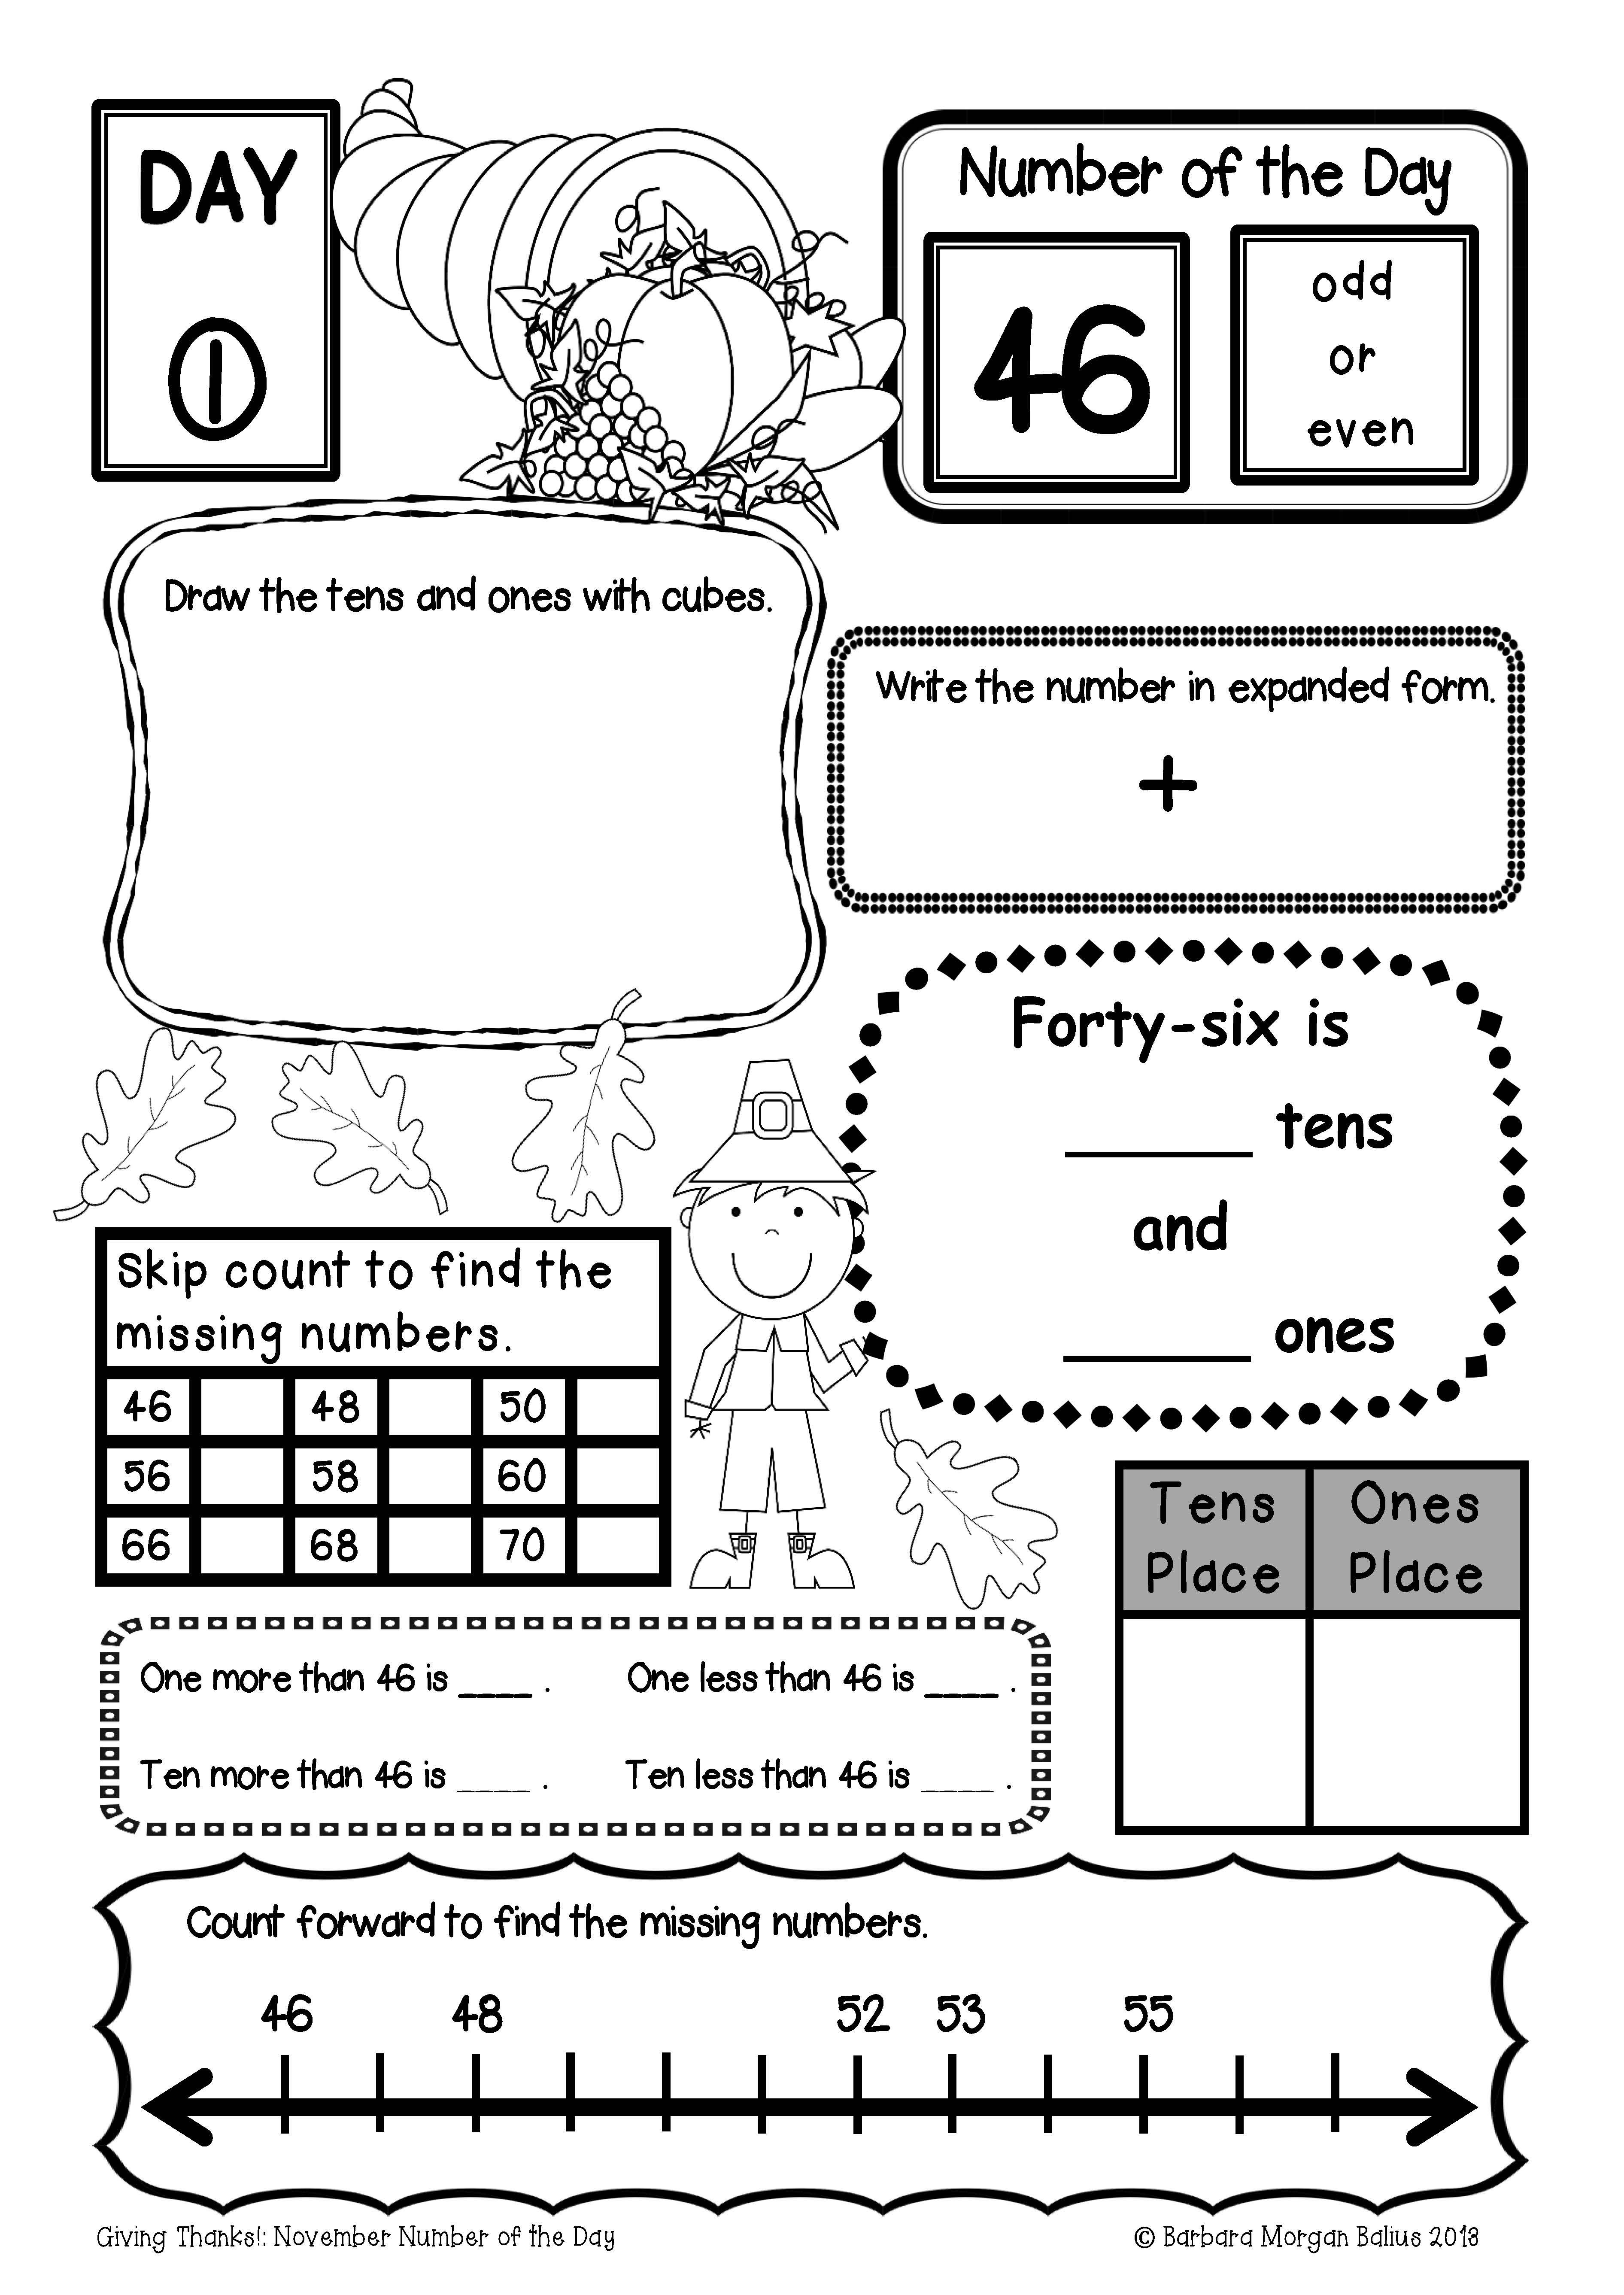 Great Thanksgiving Number Practice All Students Need Daily Practice Working With Numbers To Effectively Dev Calendar Math Homeschool Learning Math Printables [ 5346 x 3783 Pixel ]